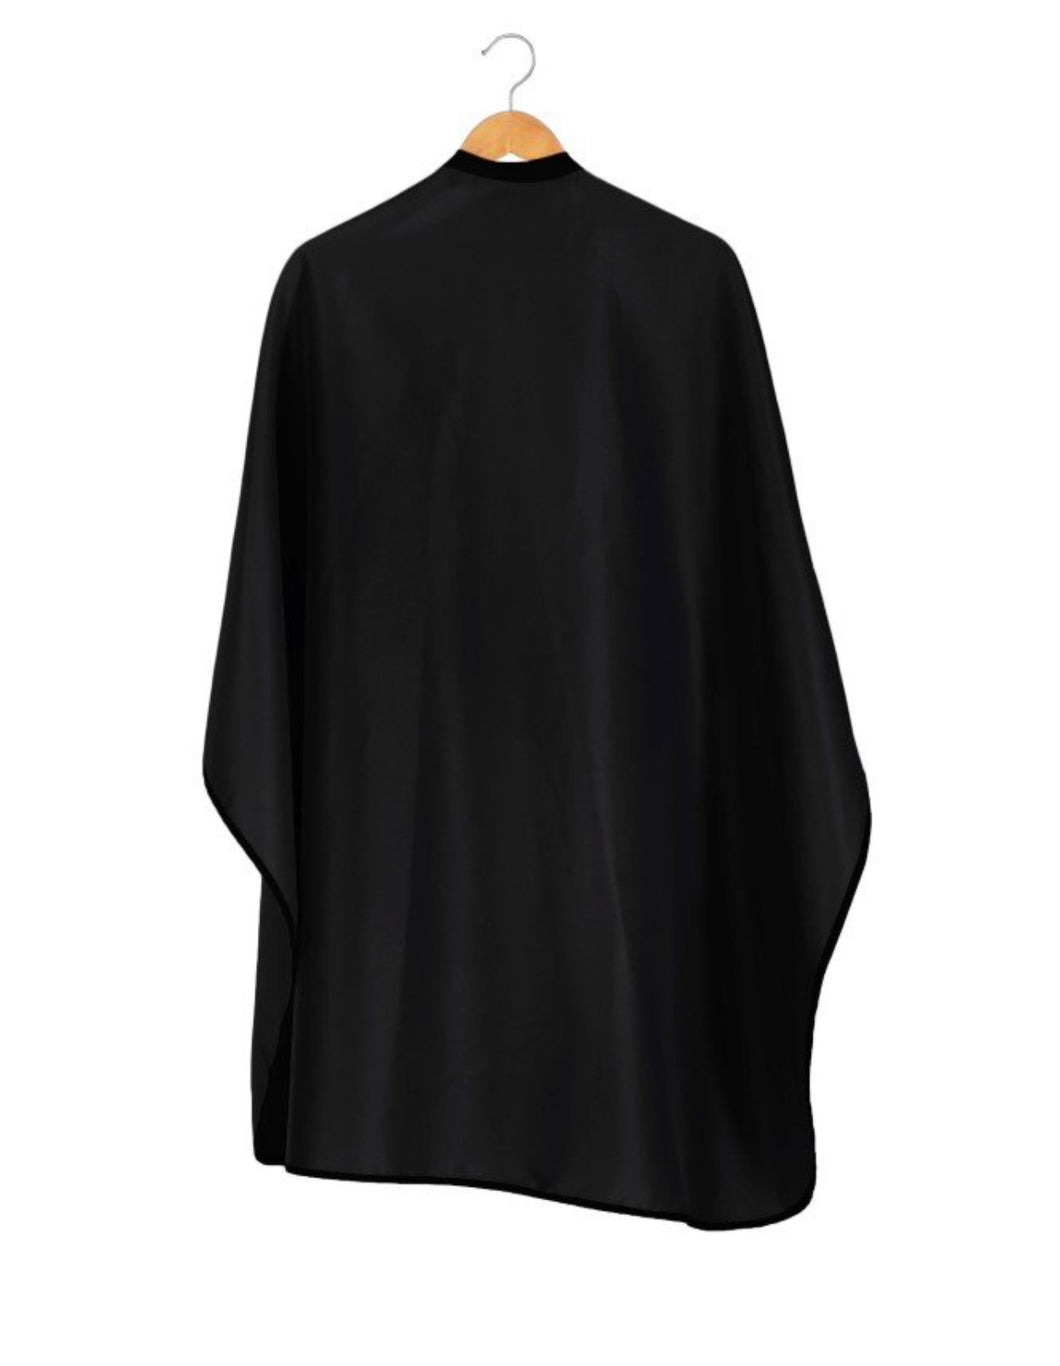 StyleTek Brushed Black Barber Cape